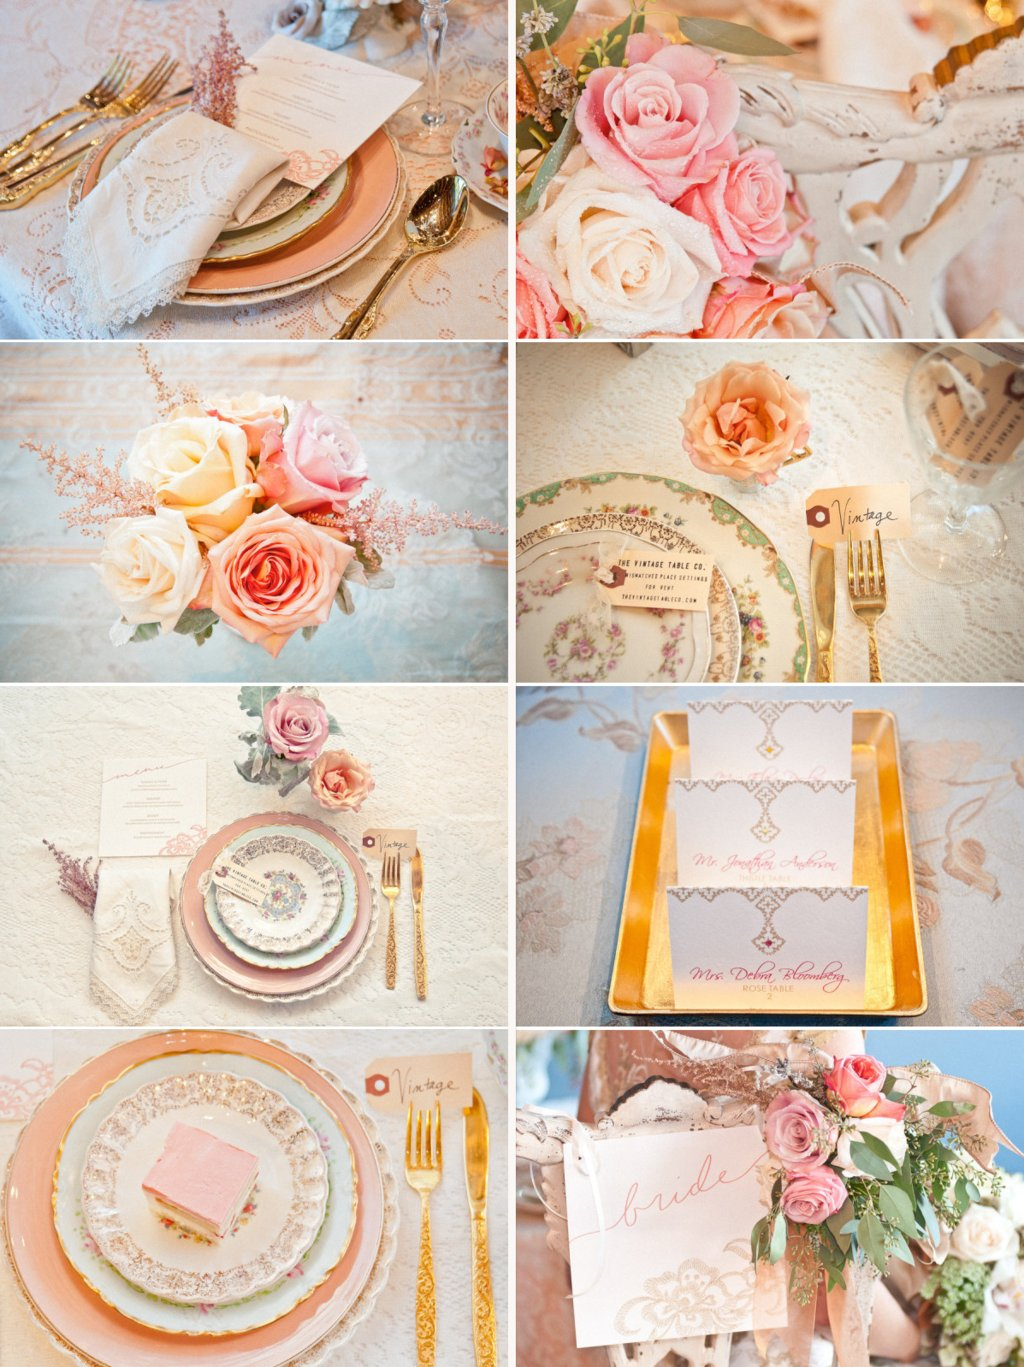 Rose gold wedding inspiration onewed rose gold ruffly wedding chair - Wedding Color Inspiration Gold Peach Cream